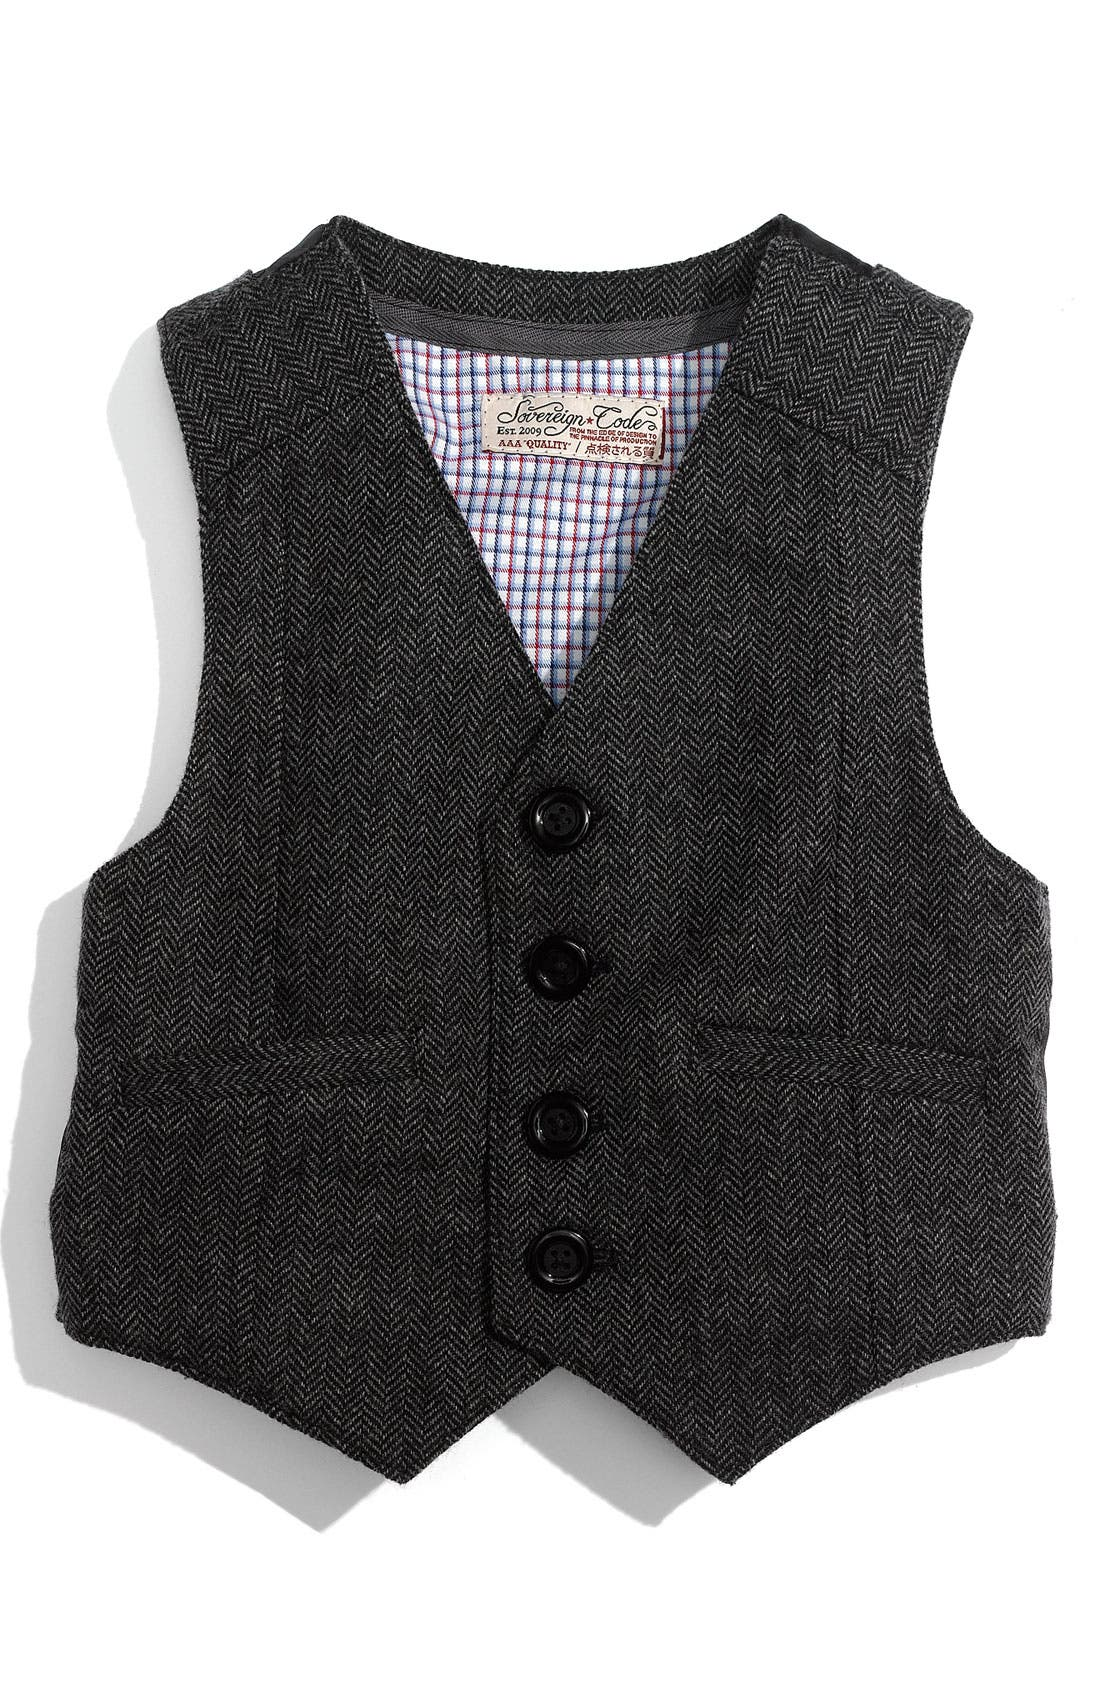 Alternate Image 1 Selected - Sovereign Code 'Lucas' Vest (Infant)